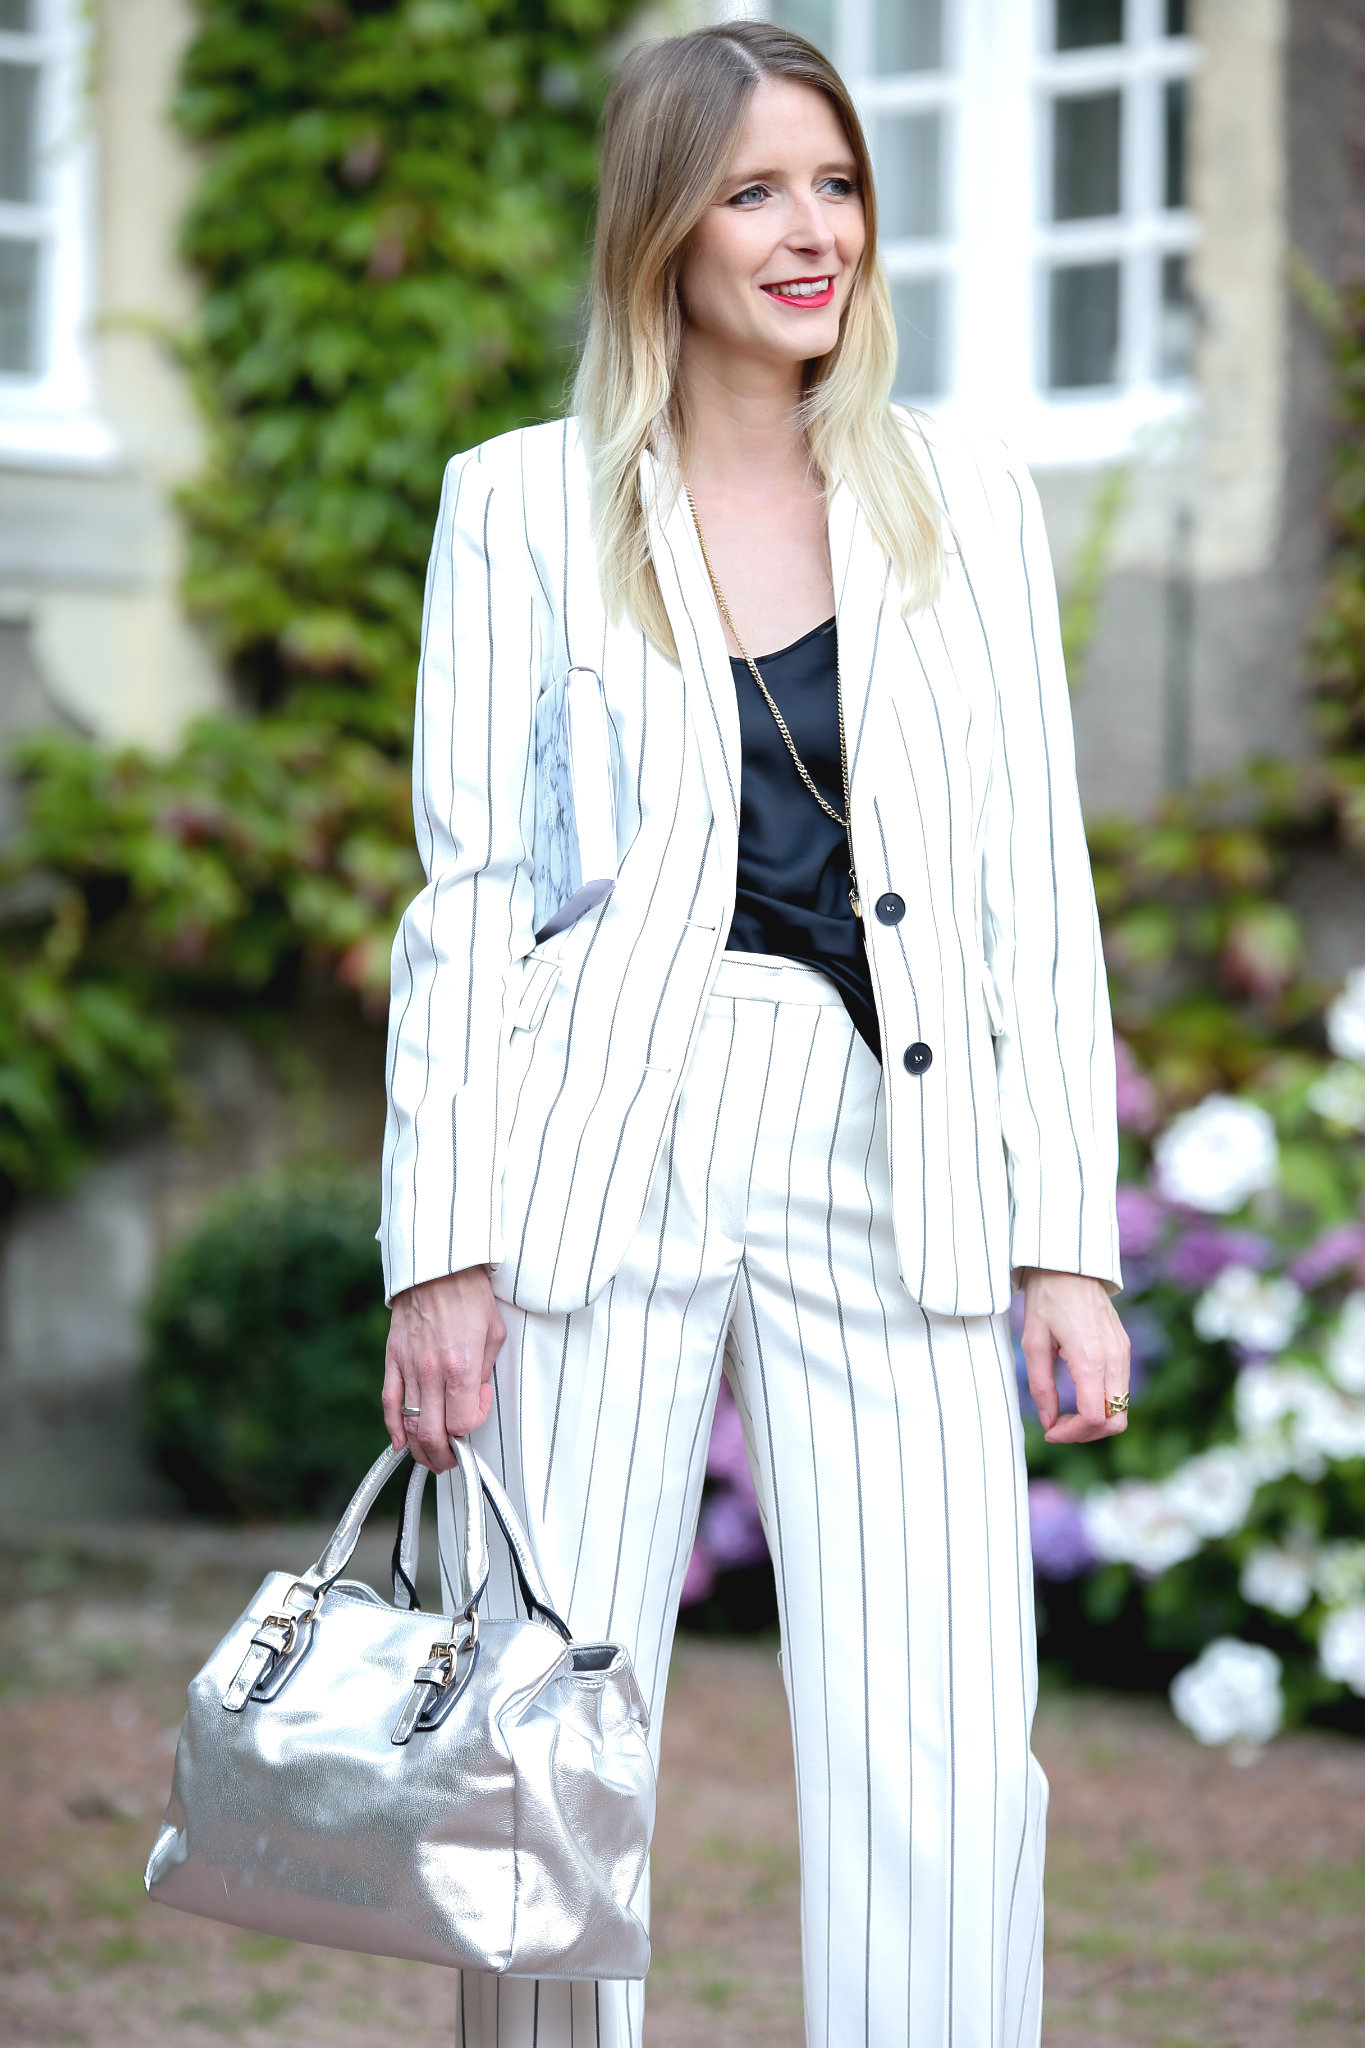 MOD-by-Monique-Looks-Girl-Boss-Pinstriped-Suit-pix